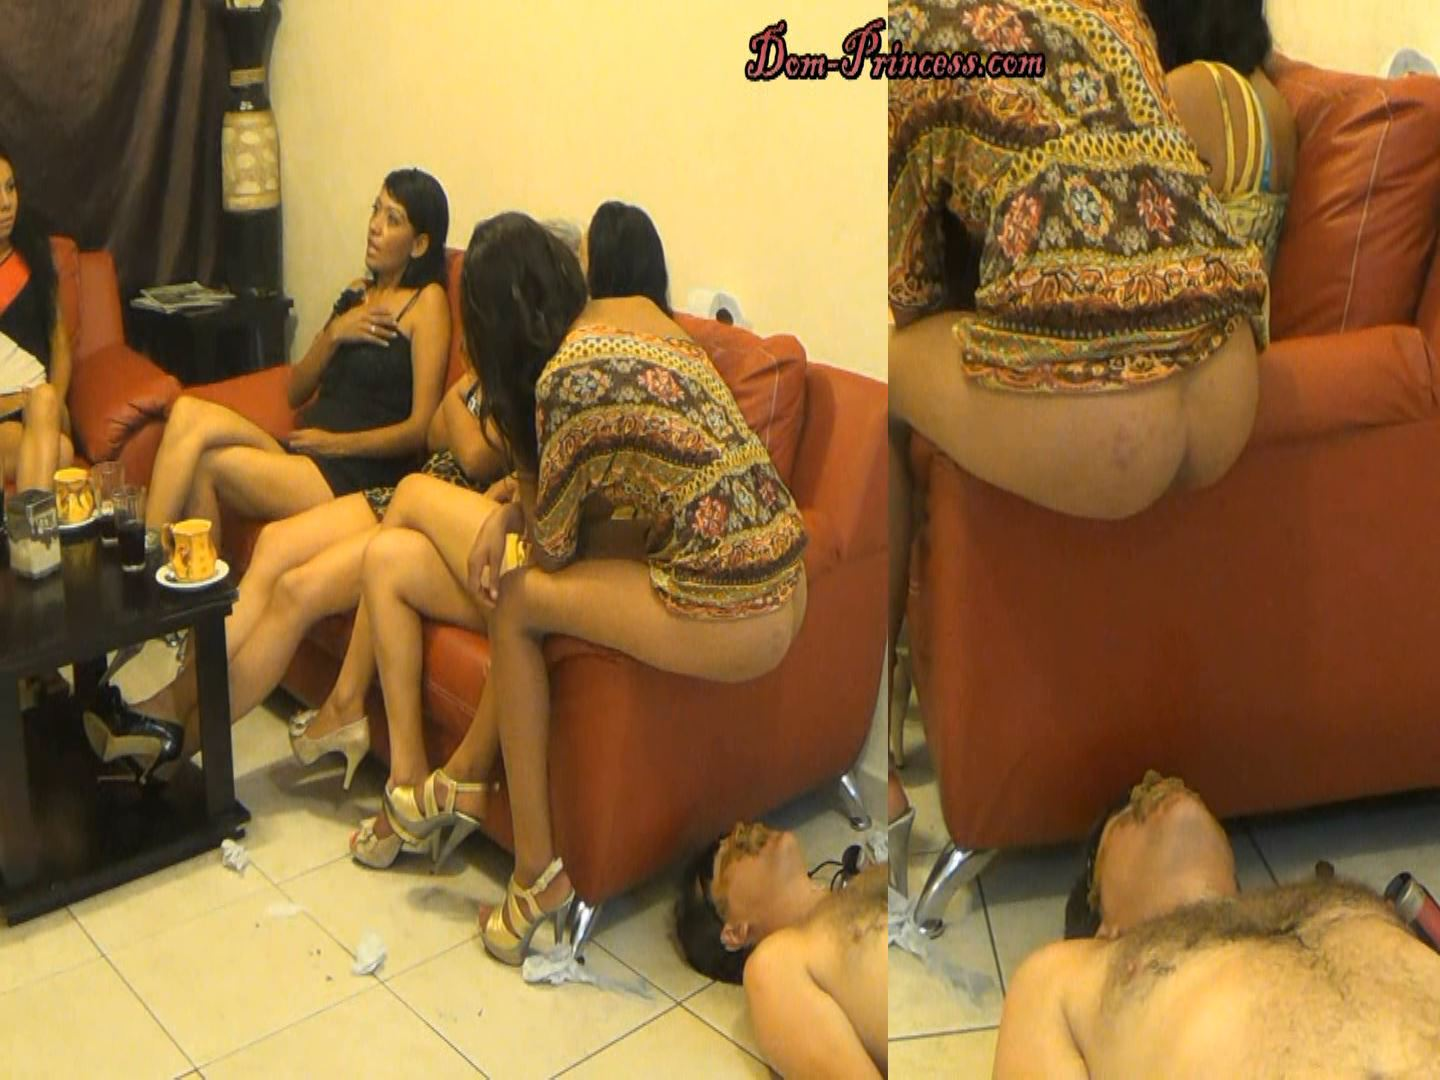 [SCAT-PRINCESS] Human Toilet on the Side Part 6 Andrea [FULL HD][1080p][WMV]